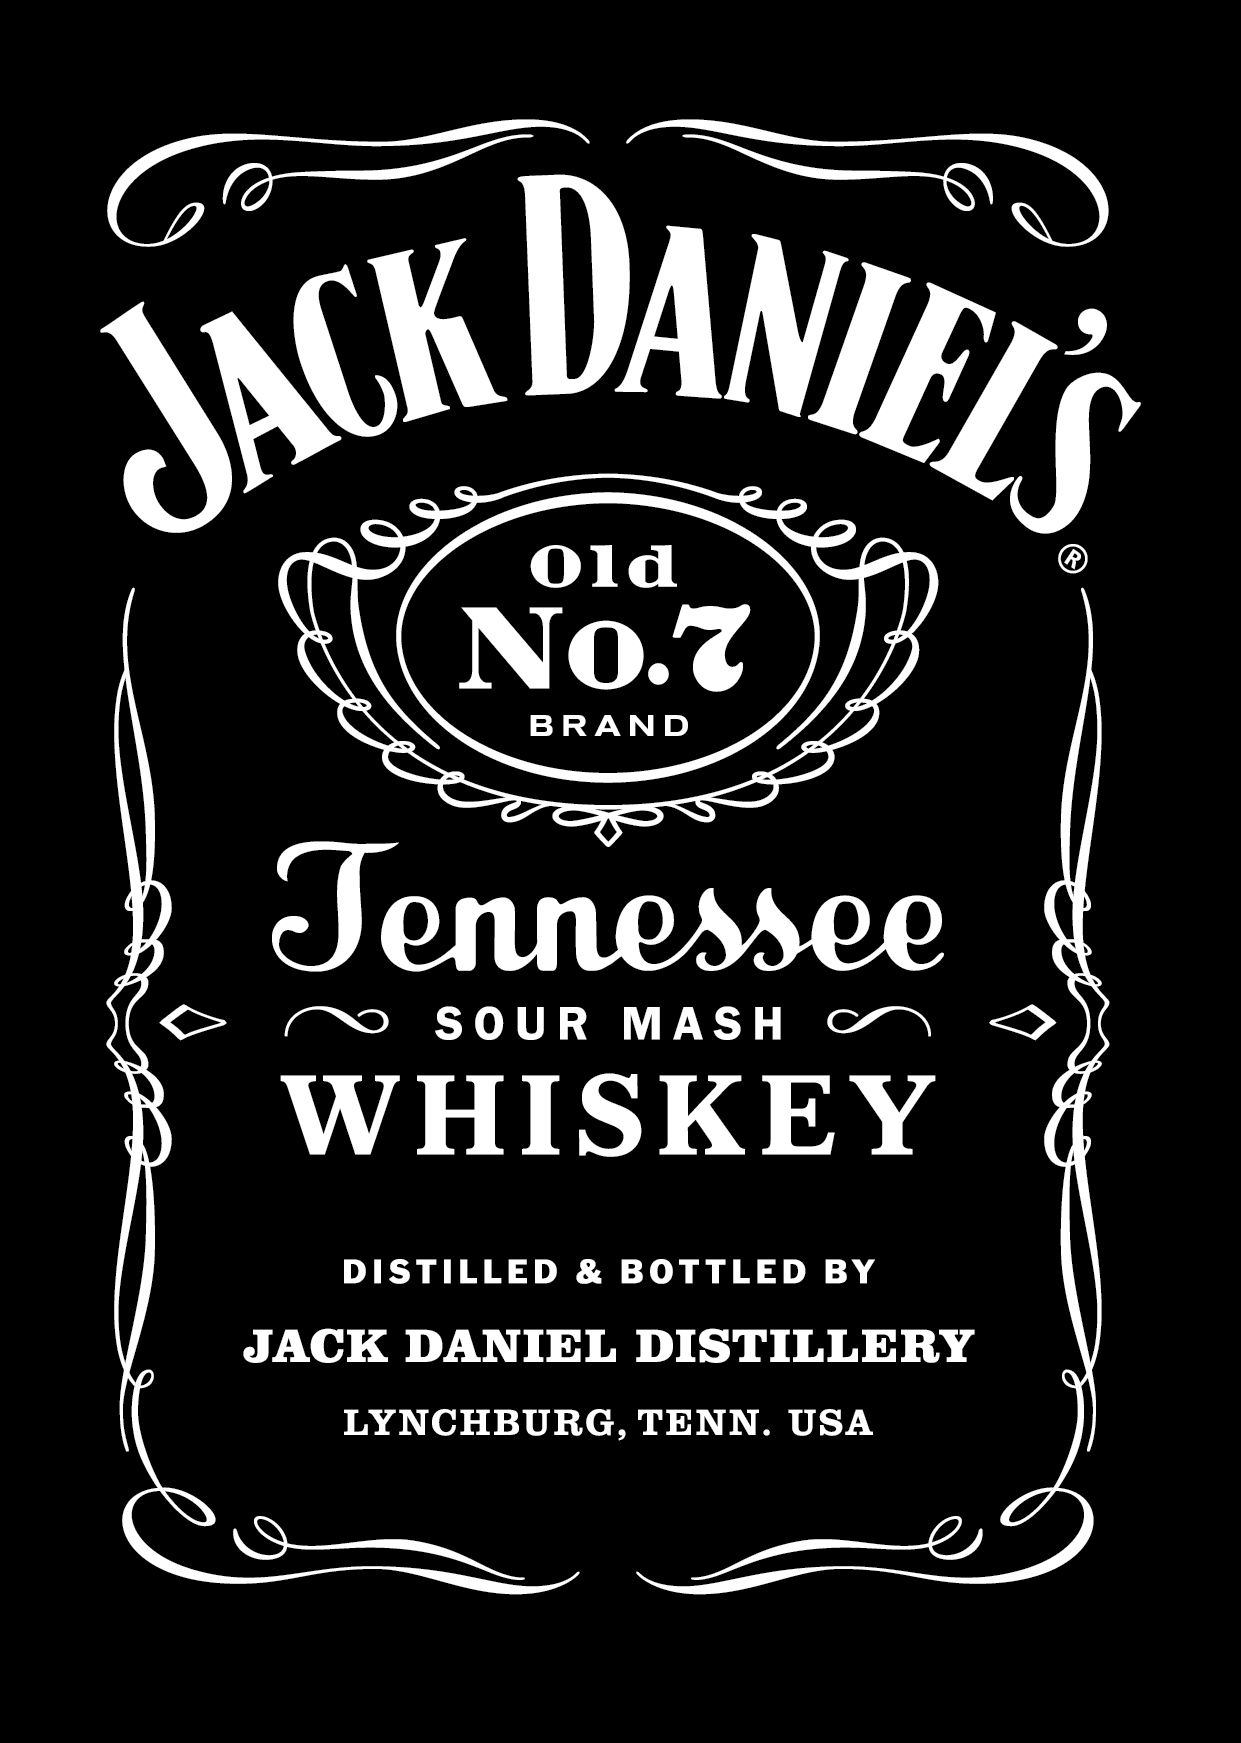 jack daniels label bing images vintage labels pinterest jack daniels label jack daniels. Black Bedroom Furniture Sets. Home Design Ideas